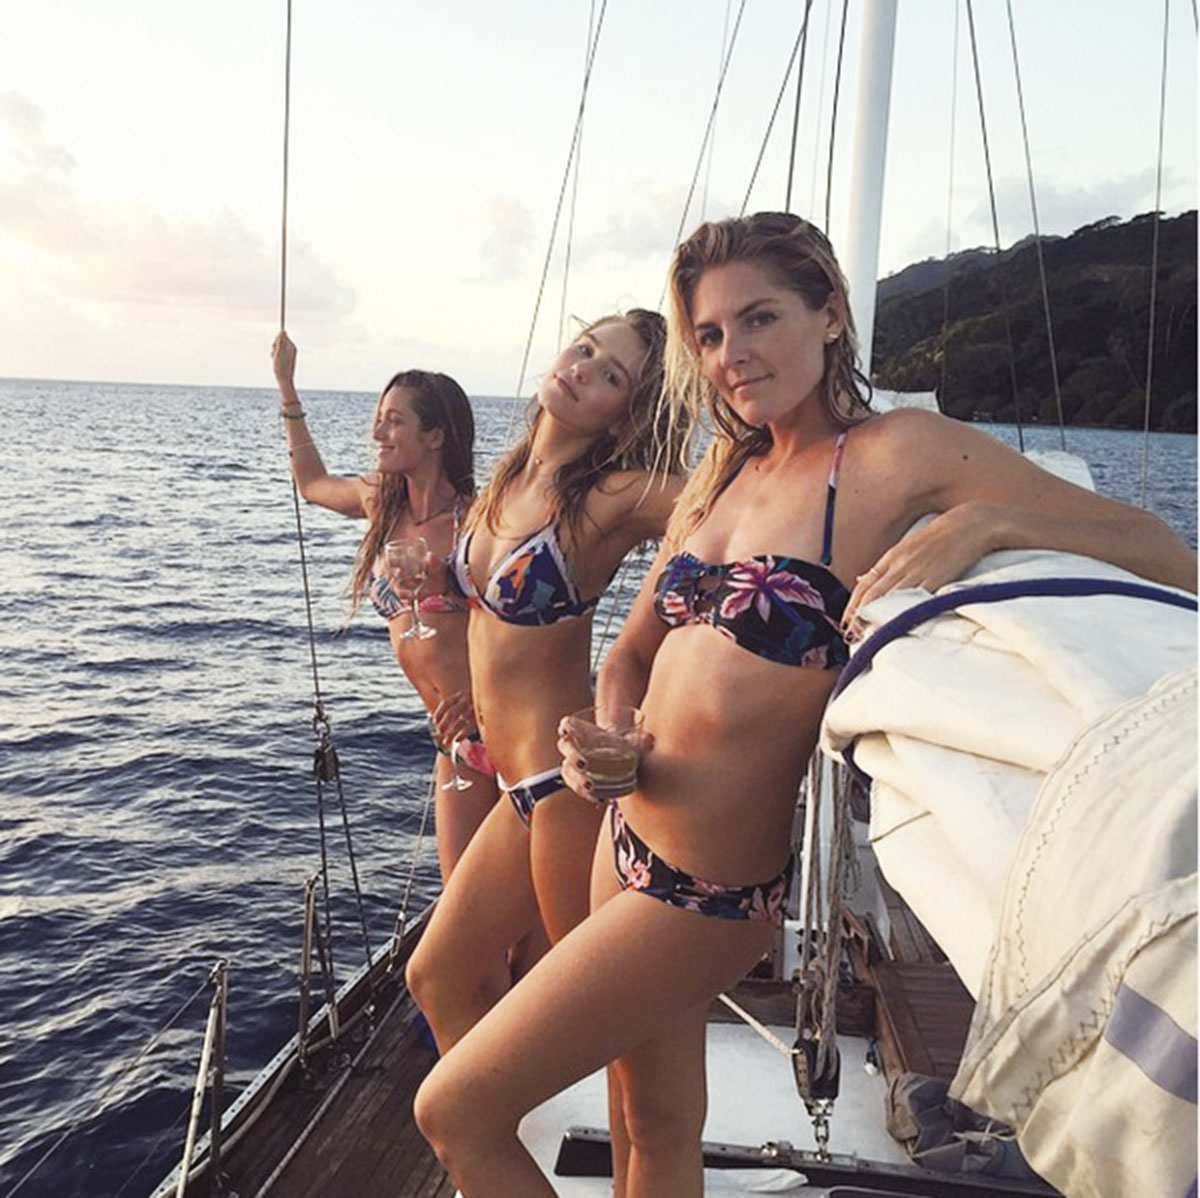 Stephanie Gilmore curtindo com as amigas, a modelo Zoe Cross e a surfista Monyca Eleogram